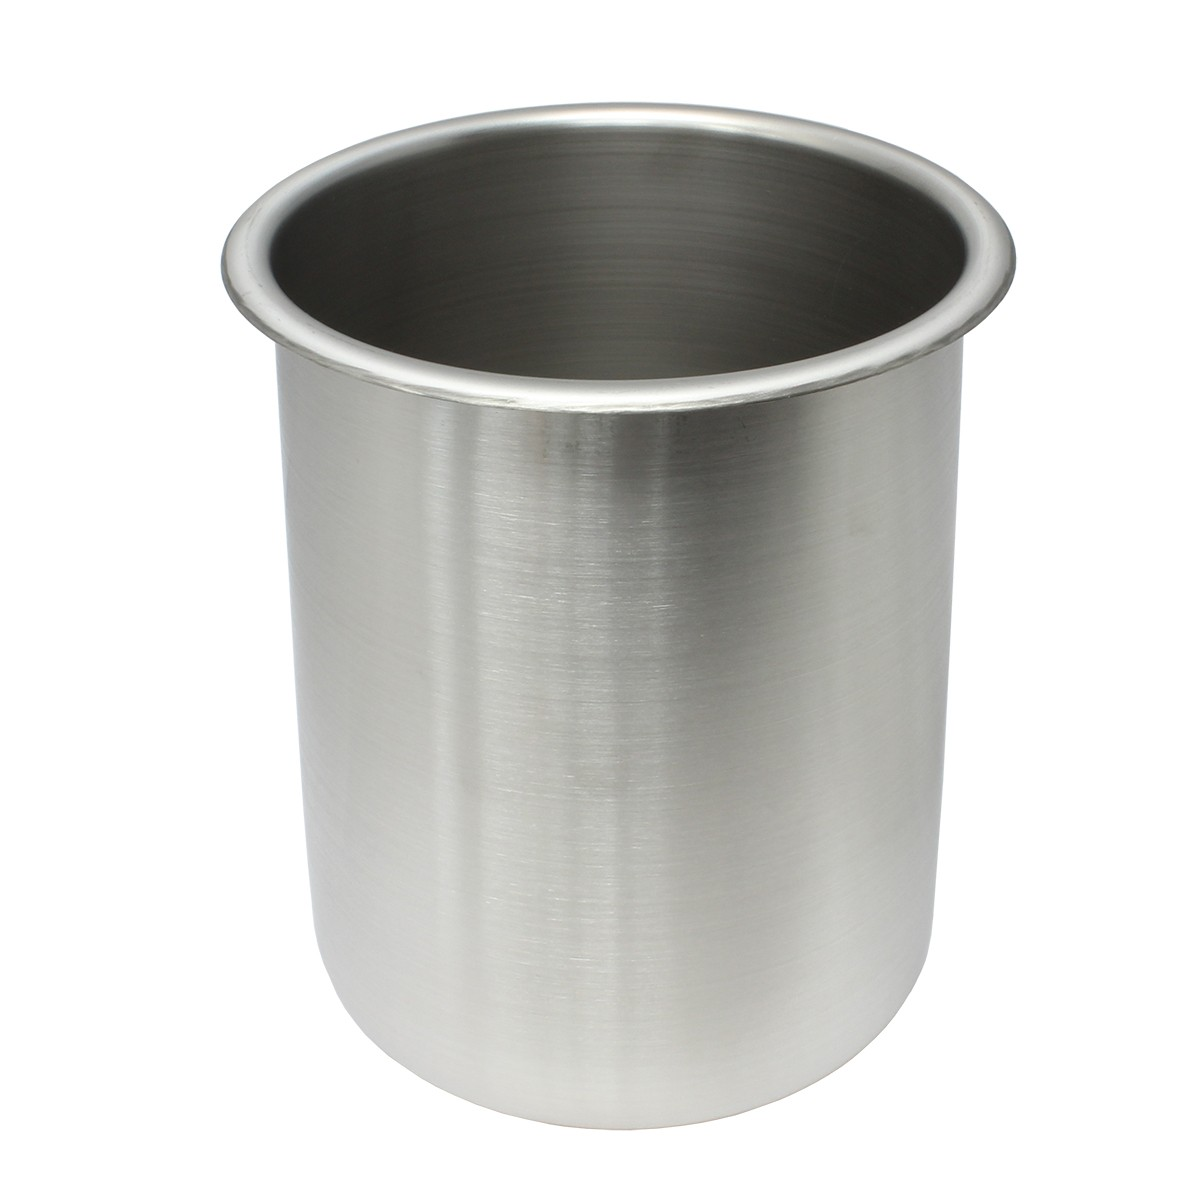 Stainless Steel Plating Tanks - 3.25 Qts